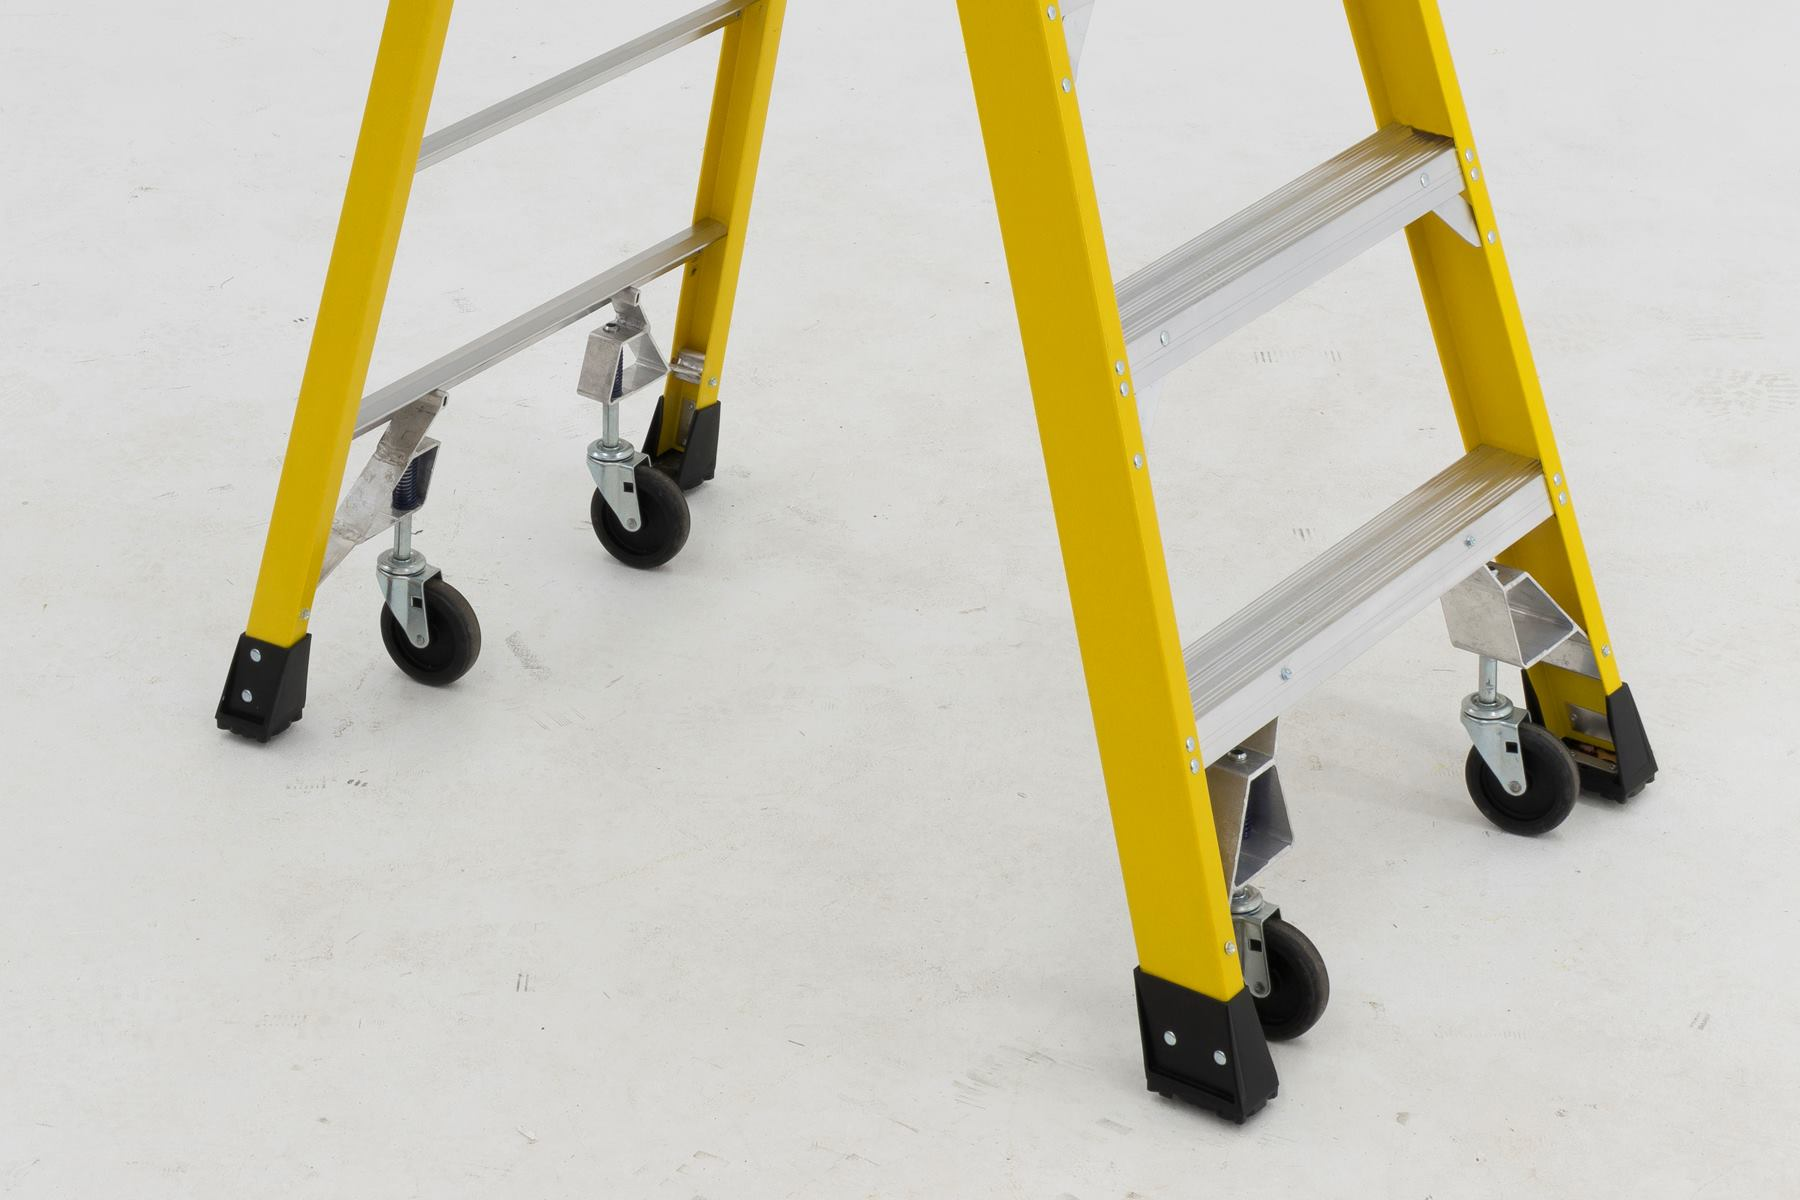 werner podium ladders move easily with new casters jlc online jobsite equipment ladders tools and equipment safety werner ladder - Werner Ladder